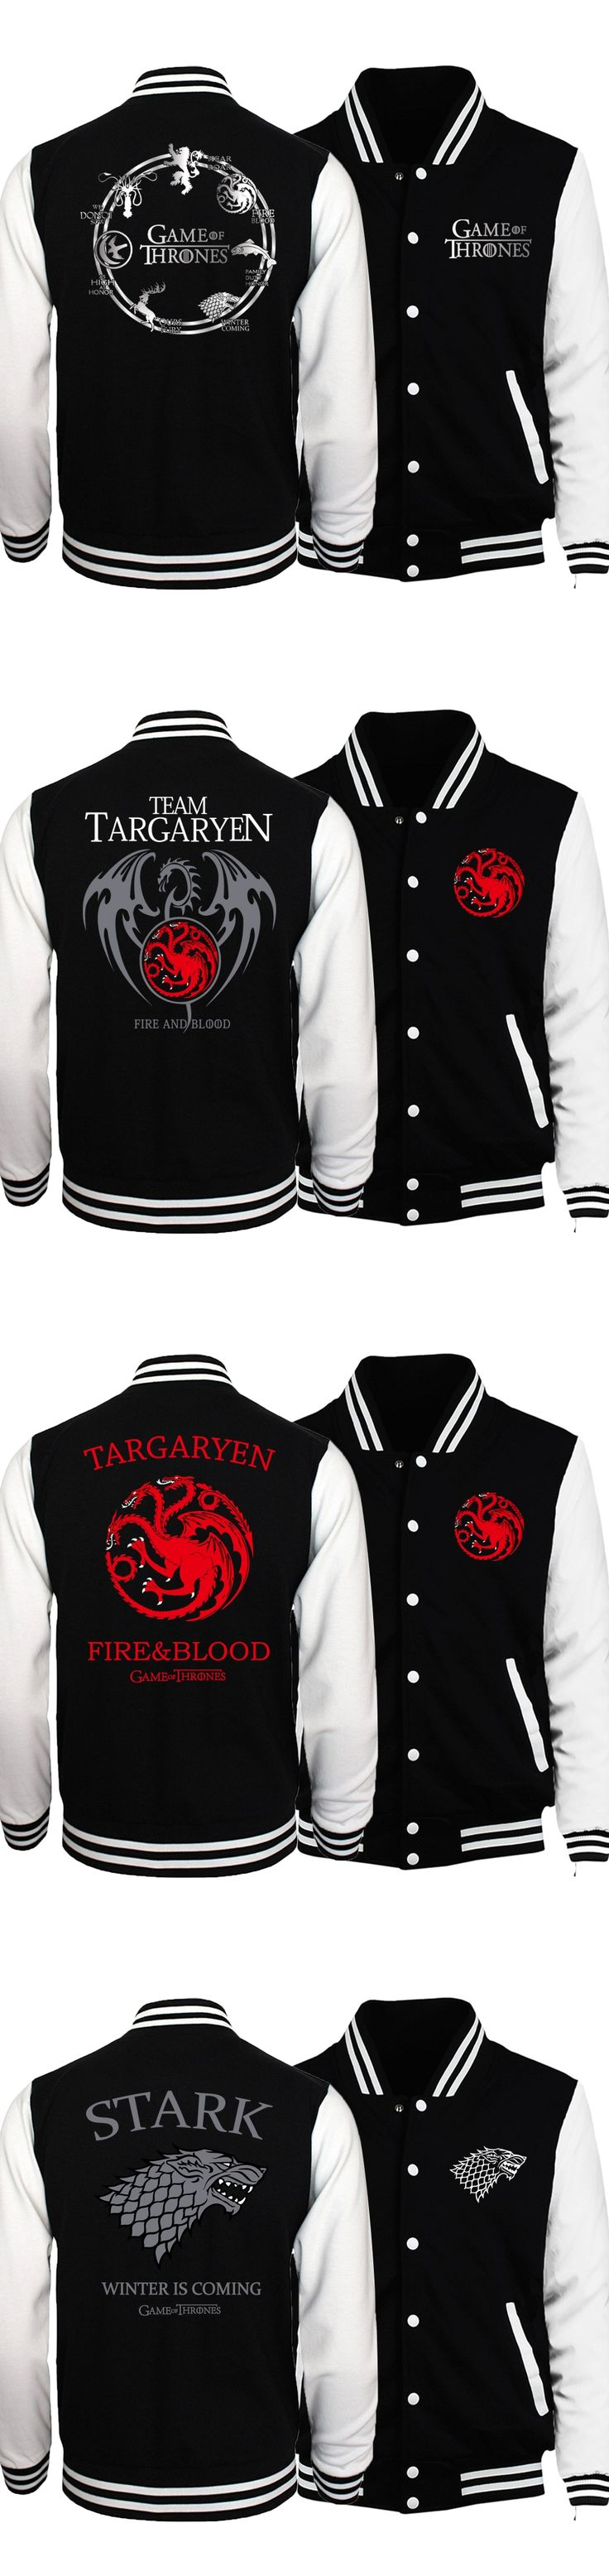 New Bomber Jacket Game of Thrones Targaryen Fire & Blood Men Jacket 2017 Spring Baseball Jackets Coat For Men Hoody Tracksuits